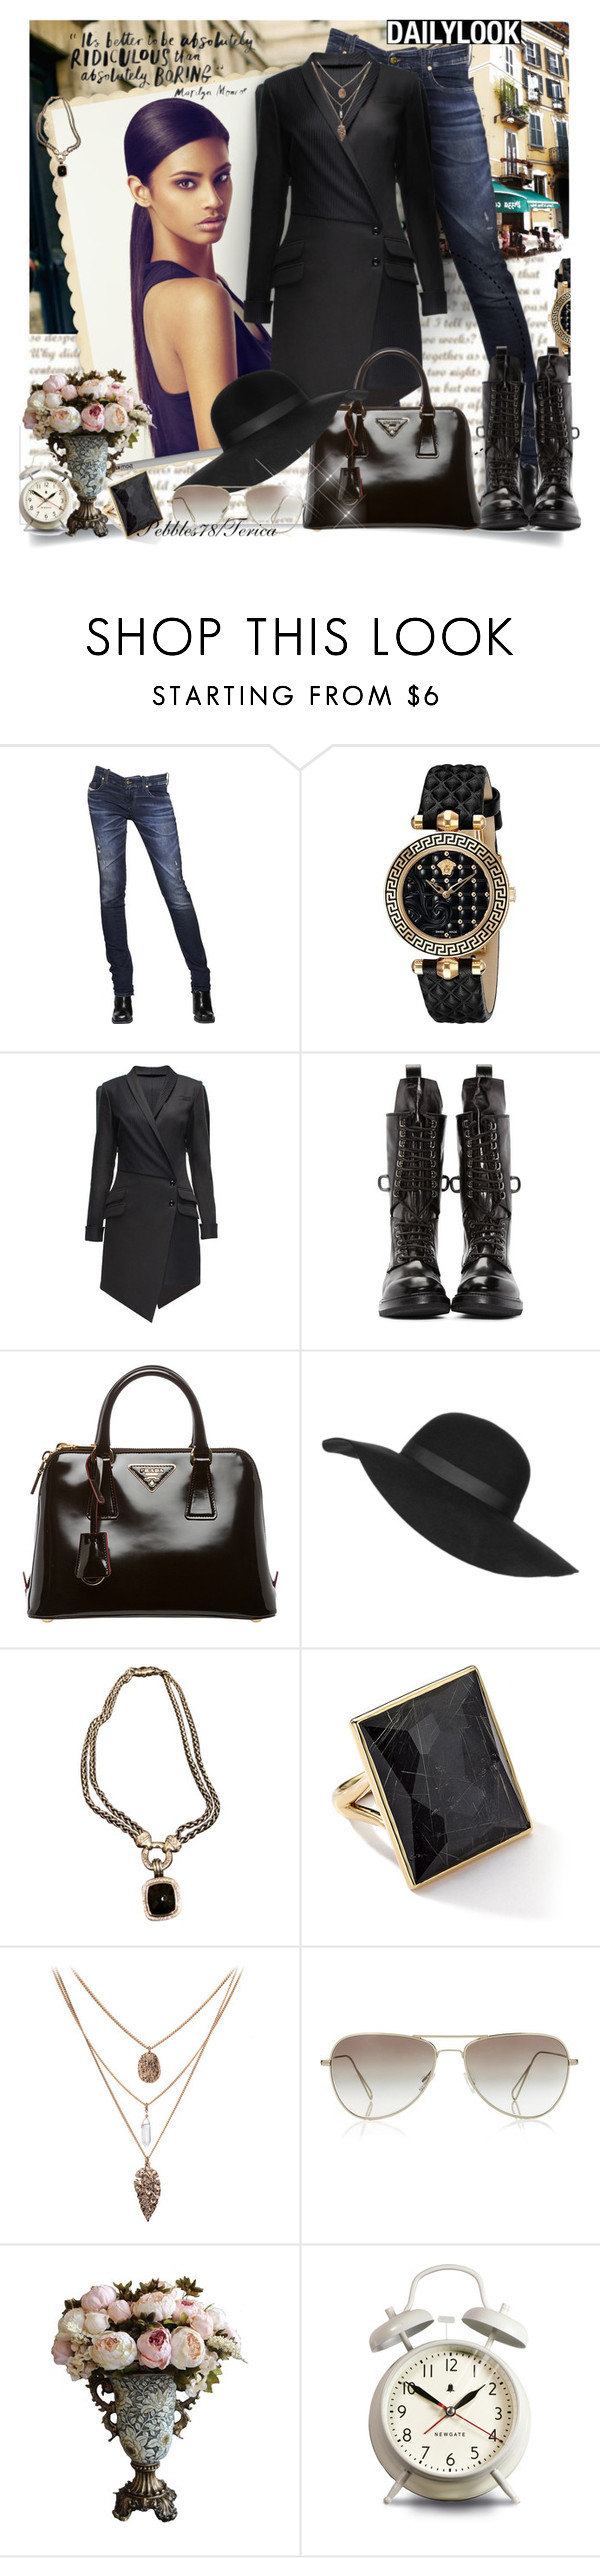 """Better to be Absolutely ridiculous than absolutely boring!"" by pebbles78 ❤ liked on Polyvore featuring Diesel, Versace, Lattori, Rick Owens, Prada, Topshop, David Yurman, Ippolita, Newgate and women's clothing"